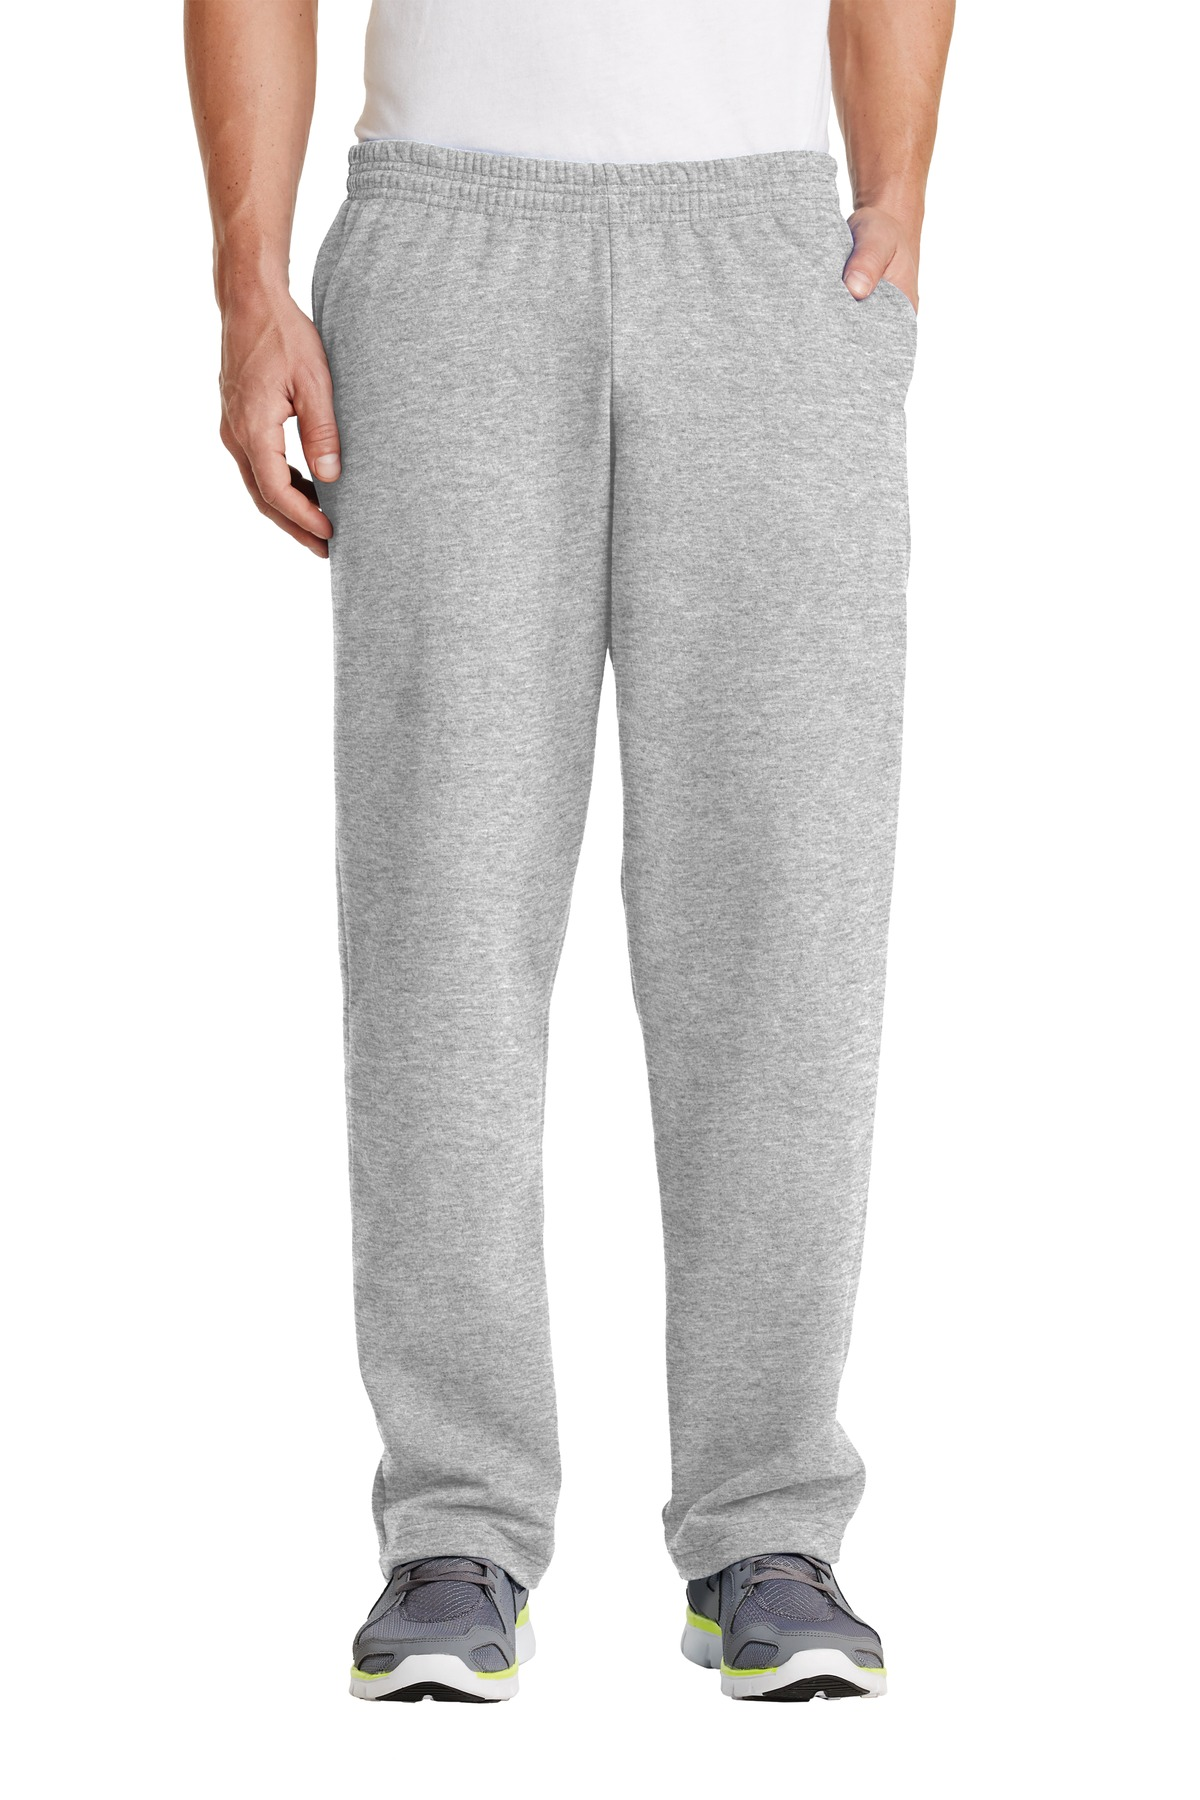 Port & Company ®  - Core Fleece Sweatpant with Pockets. PC78P - Ash